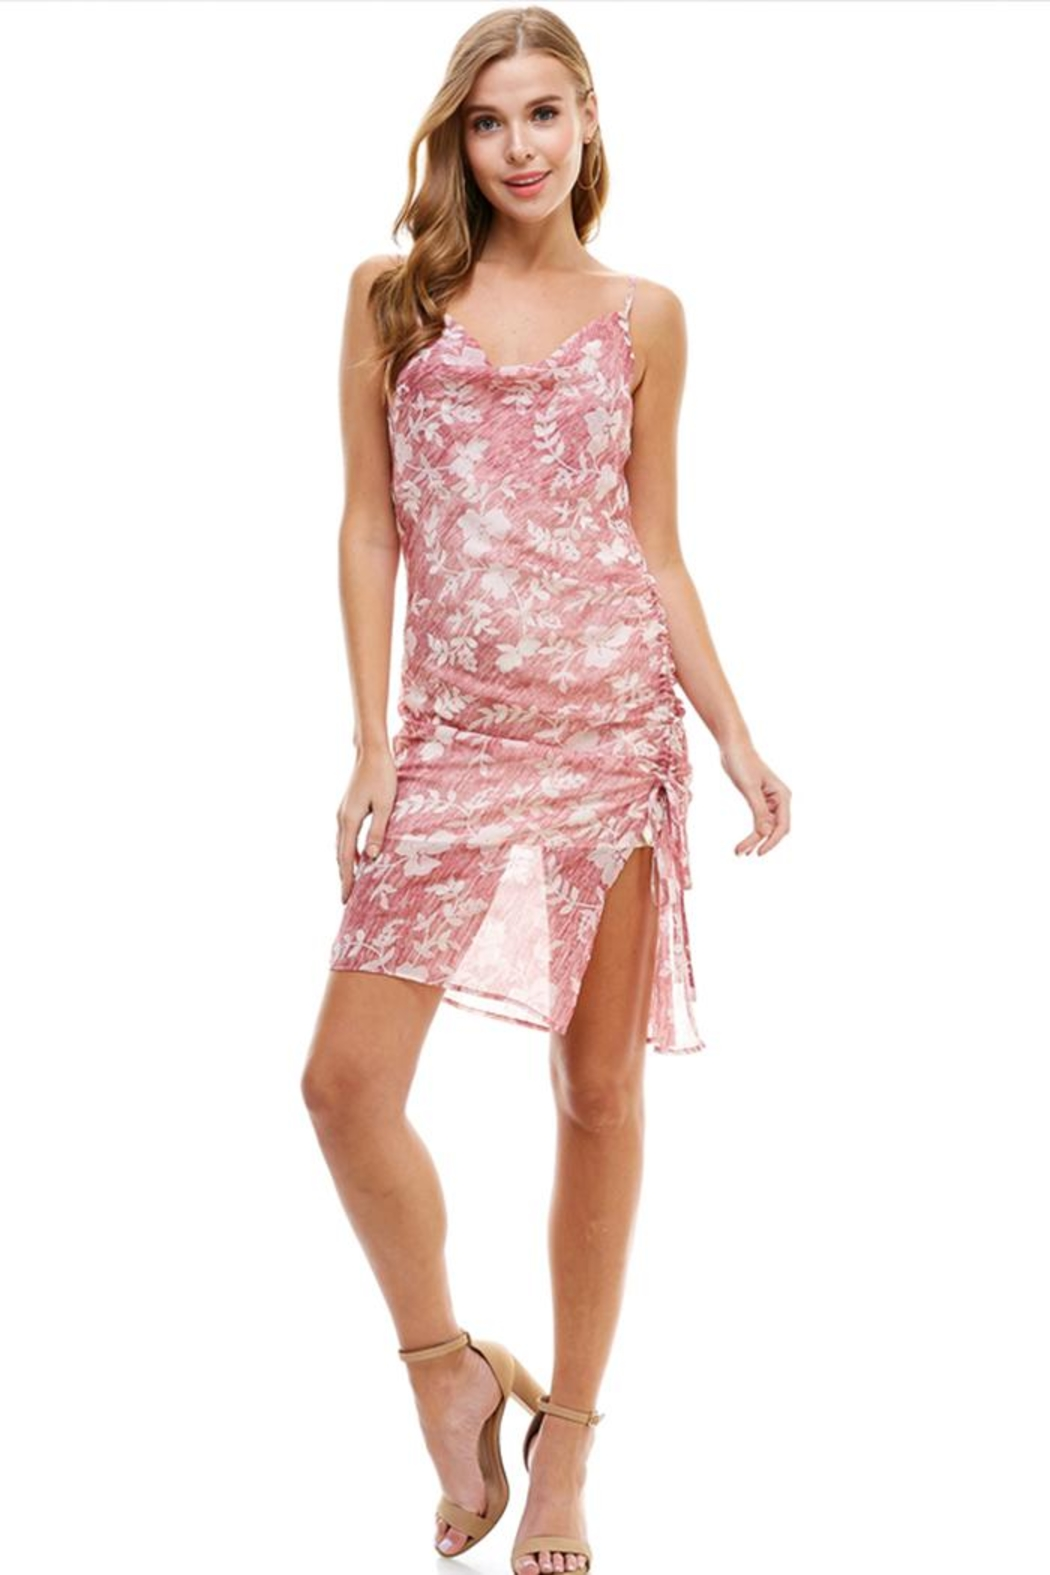 ACOA Floral Ruched Dress - Main Image